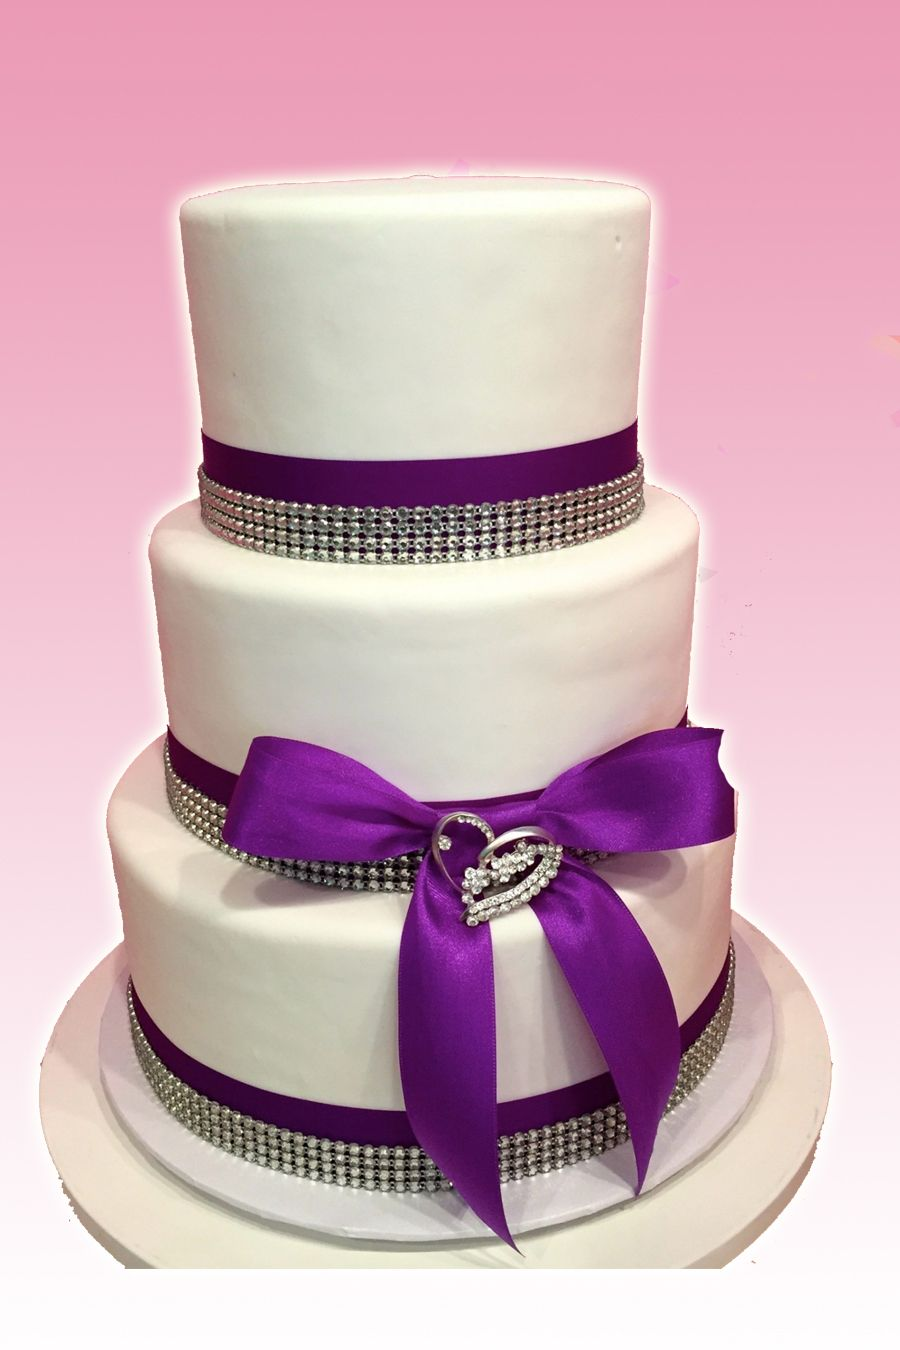 3 Tier Wedding Cake with Purple Ribbon and Bling JordanSutton